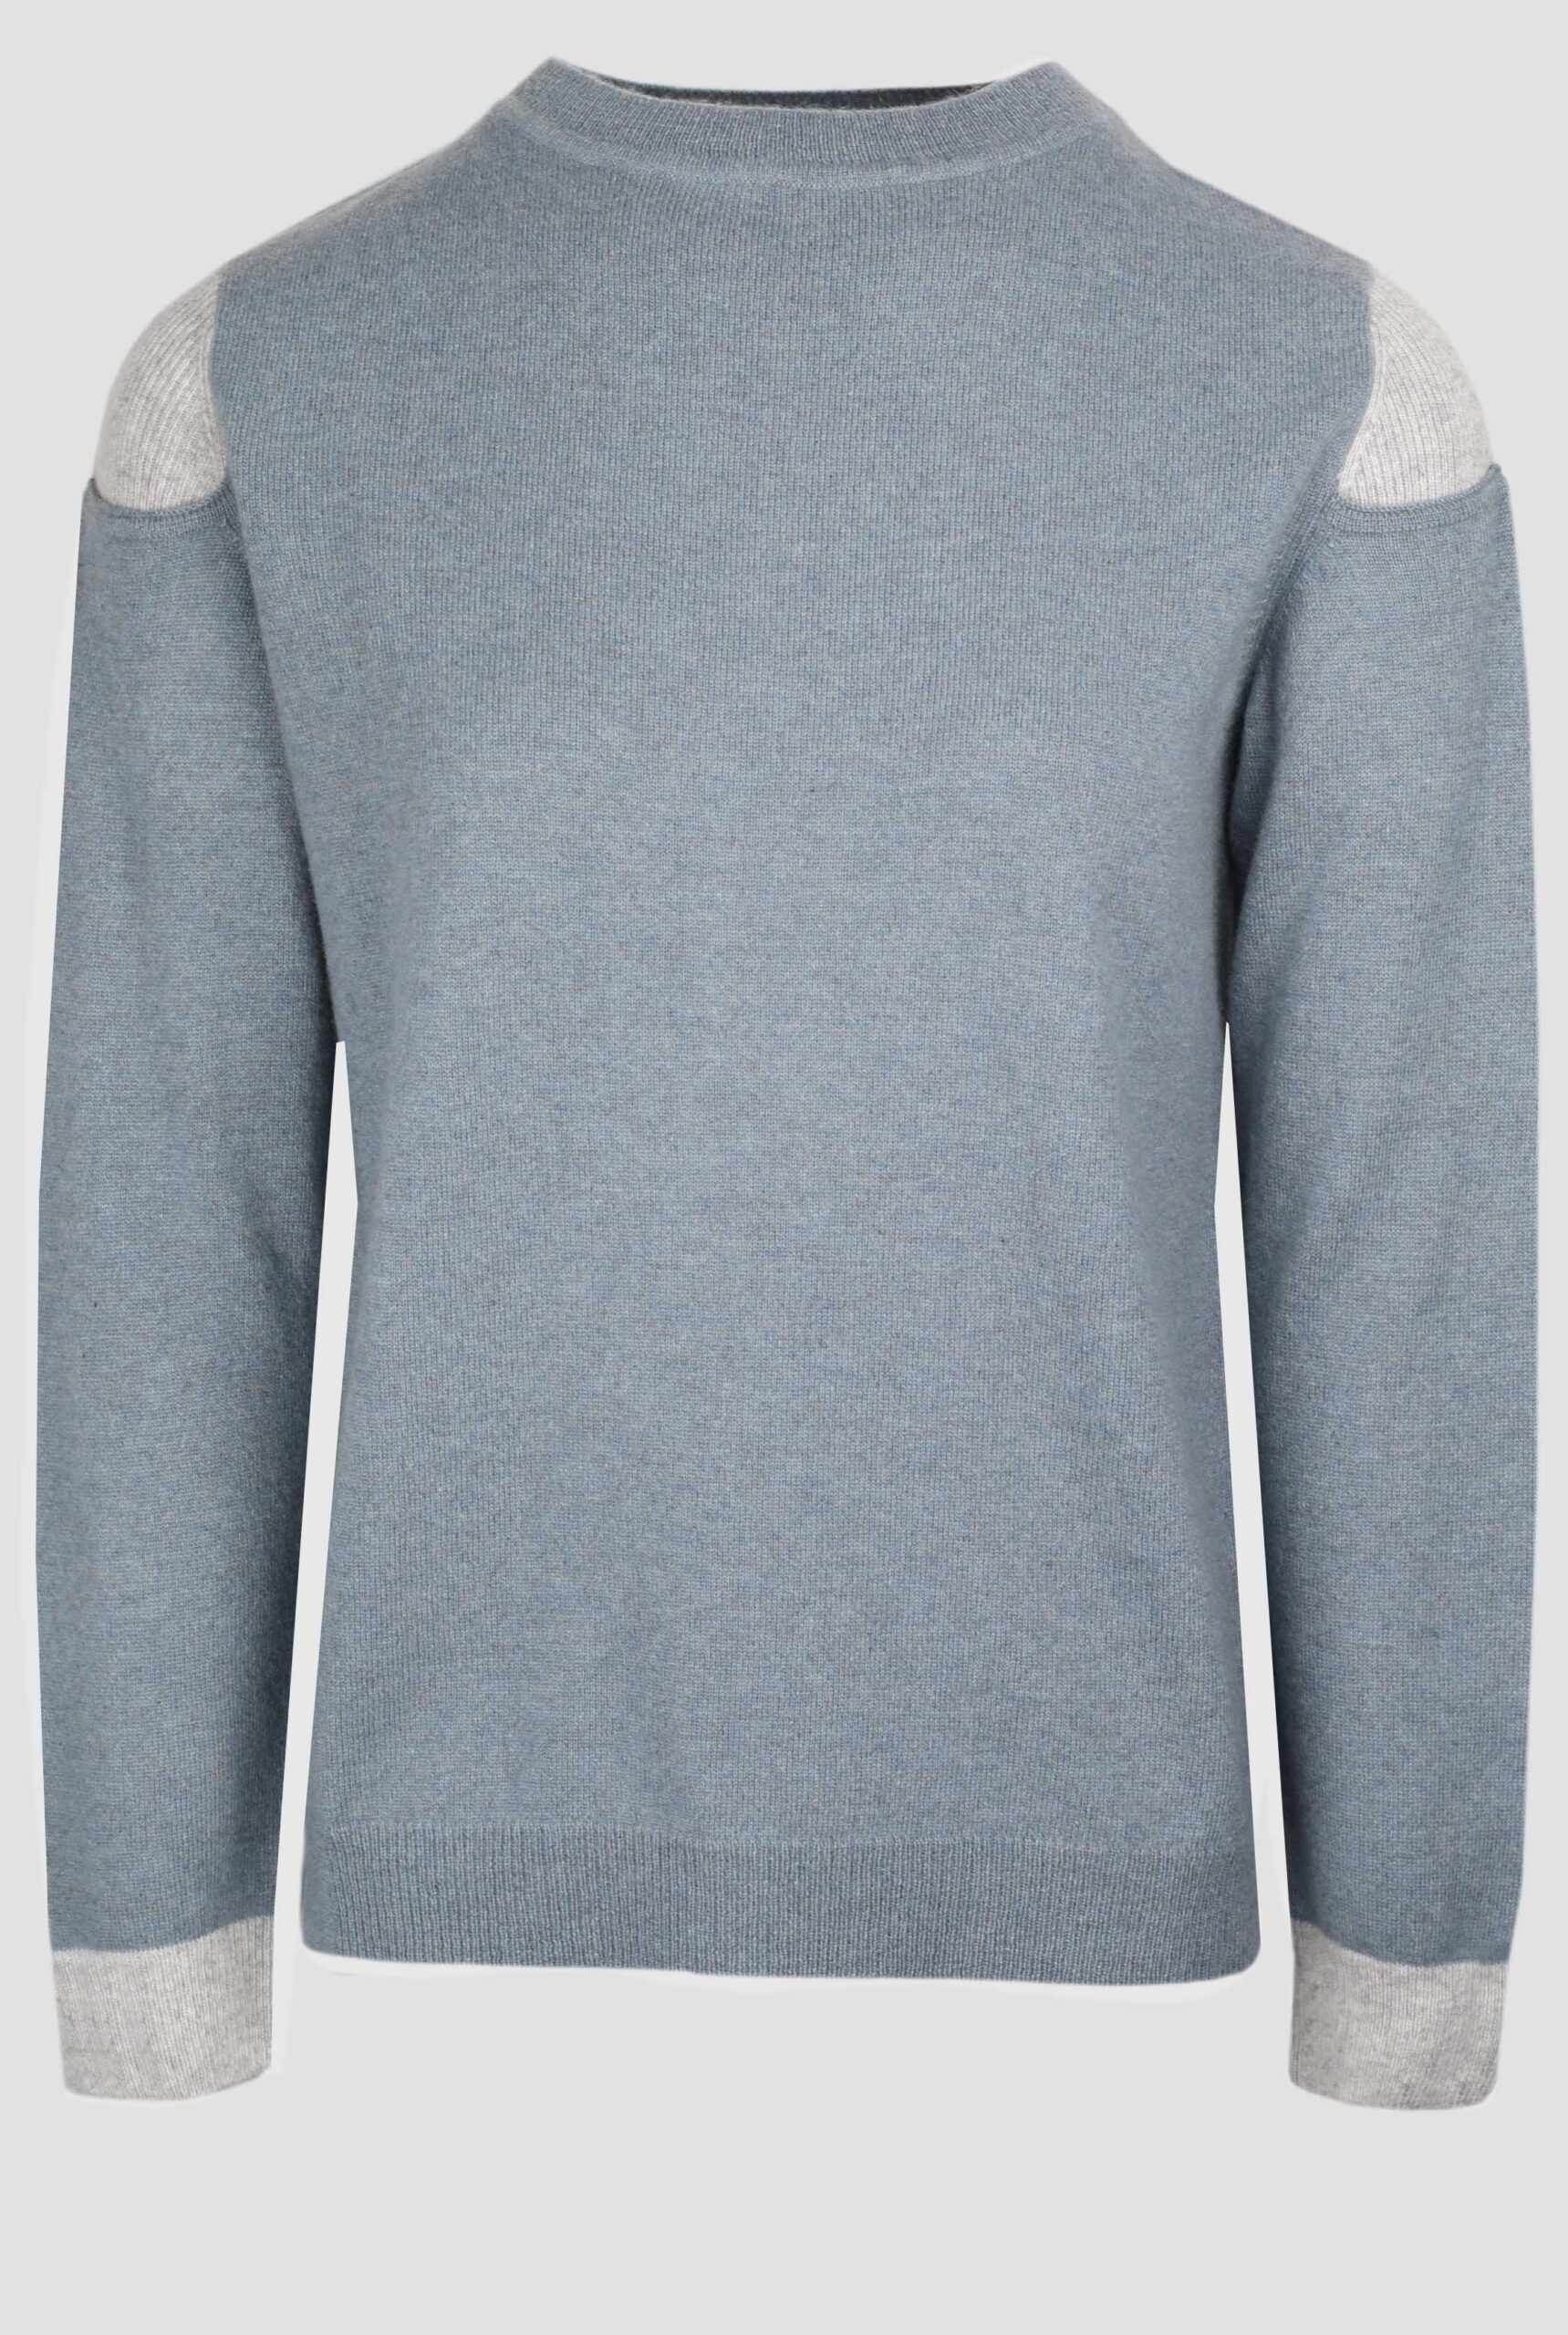 Grey crew neck cashmere sweater